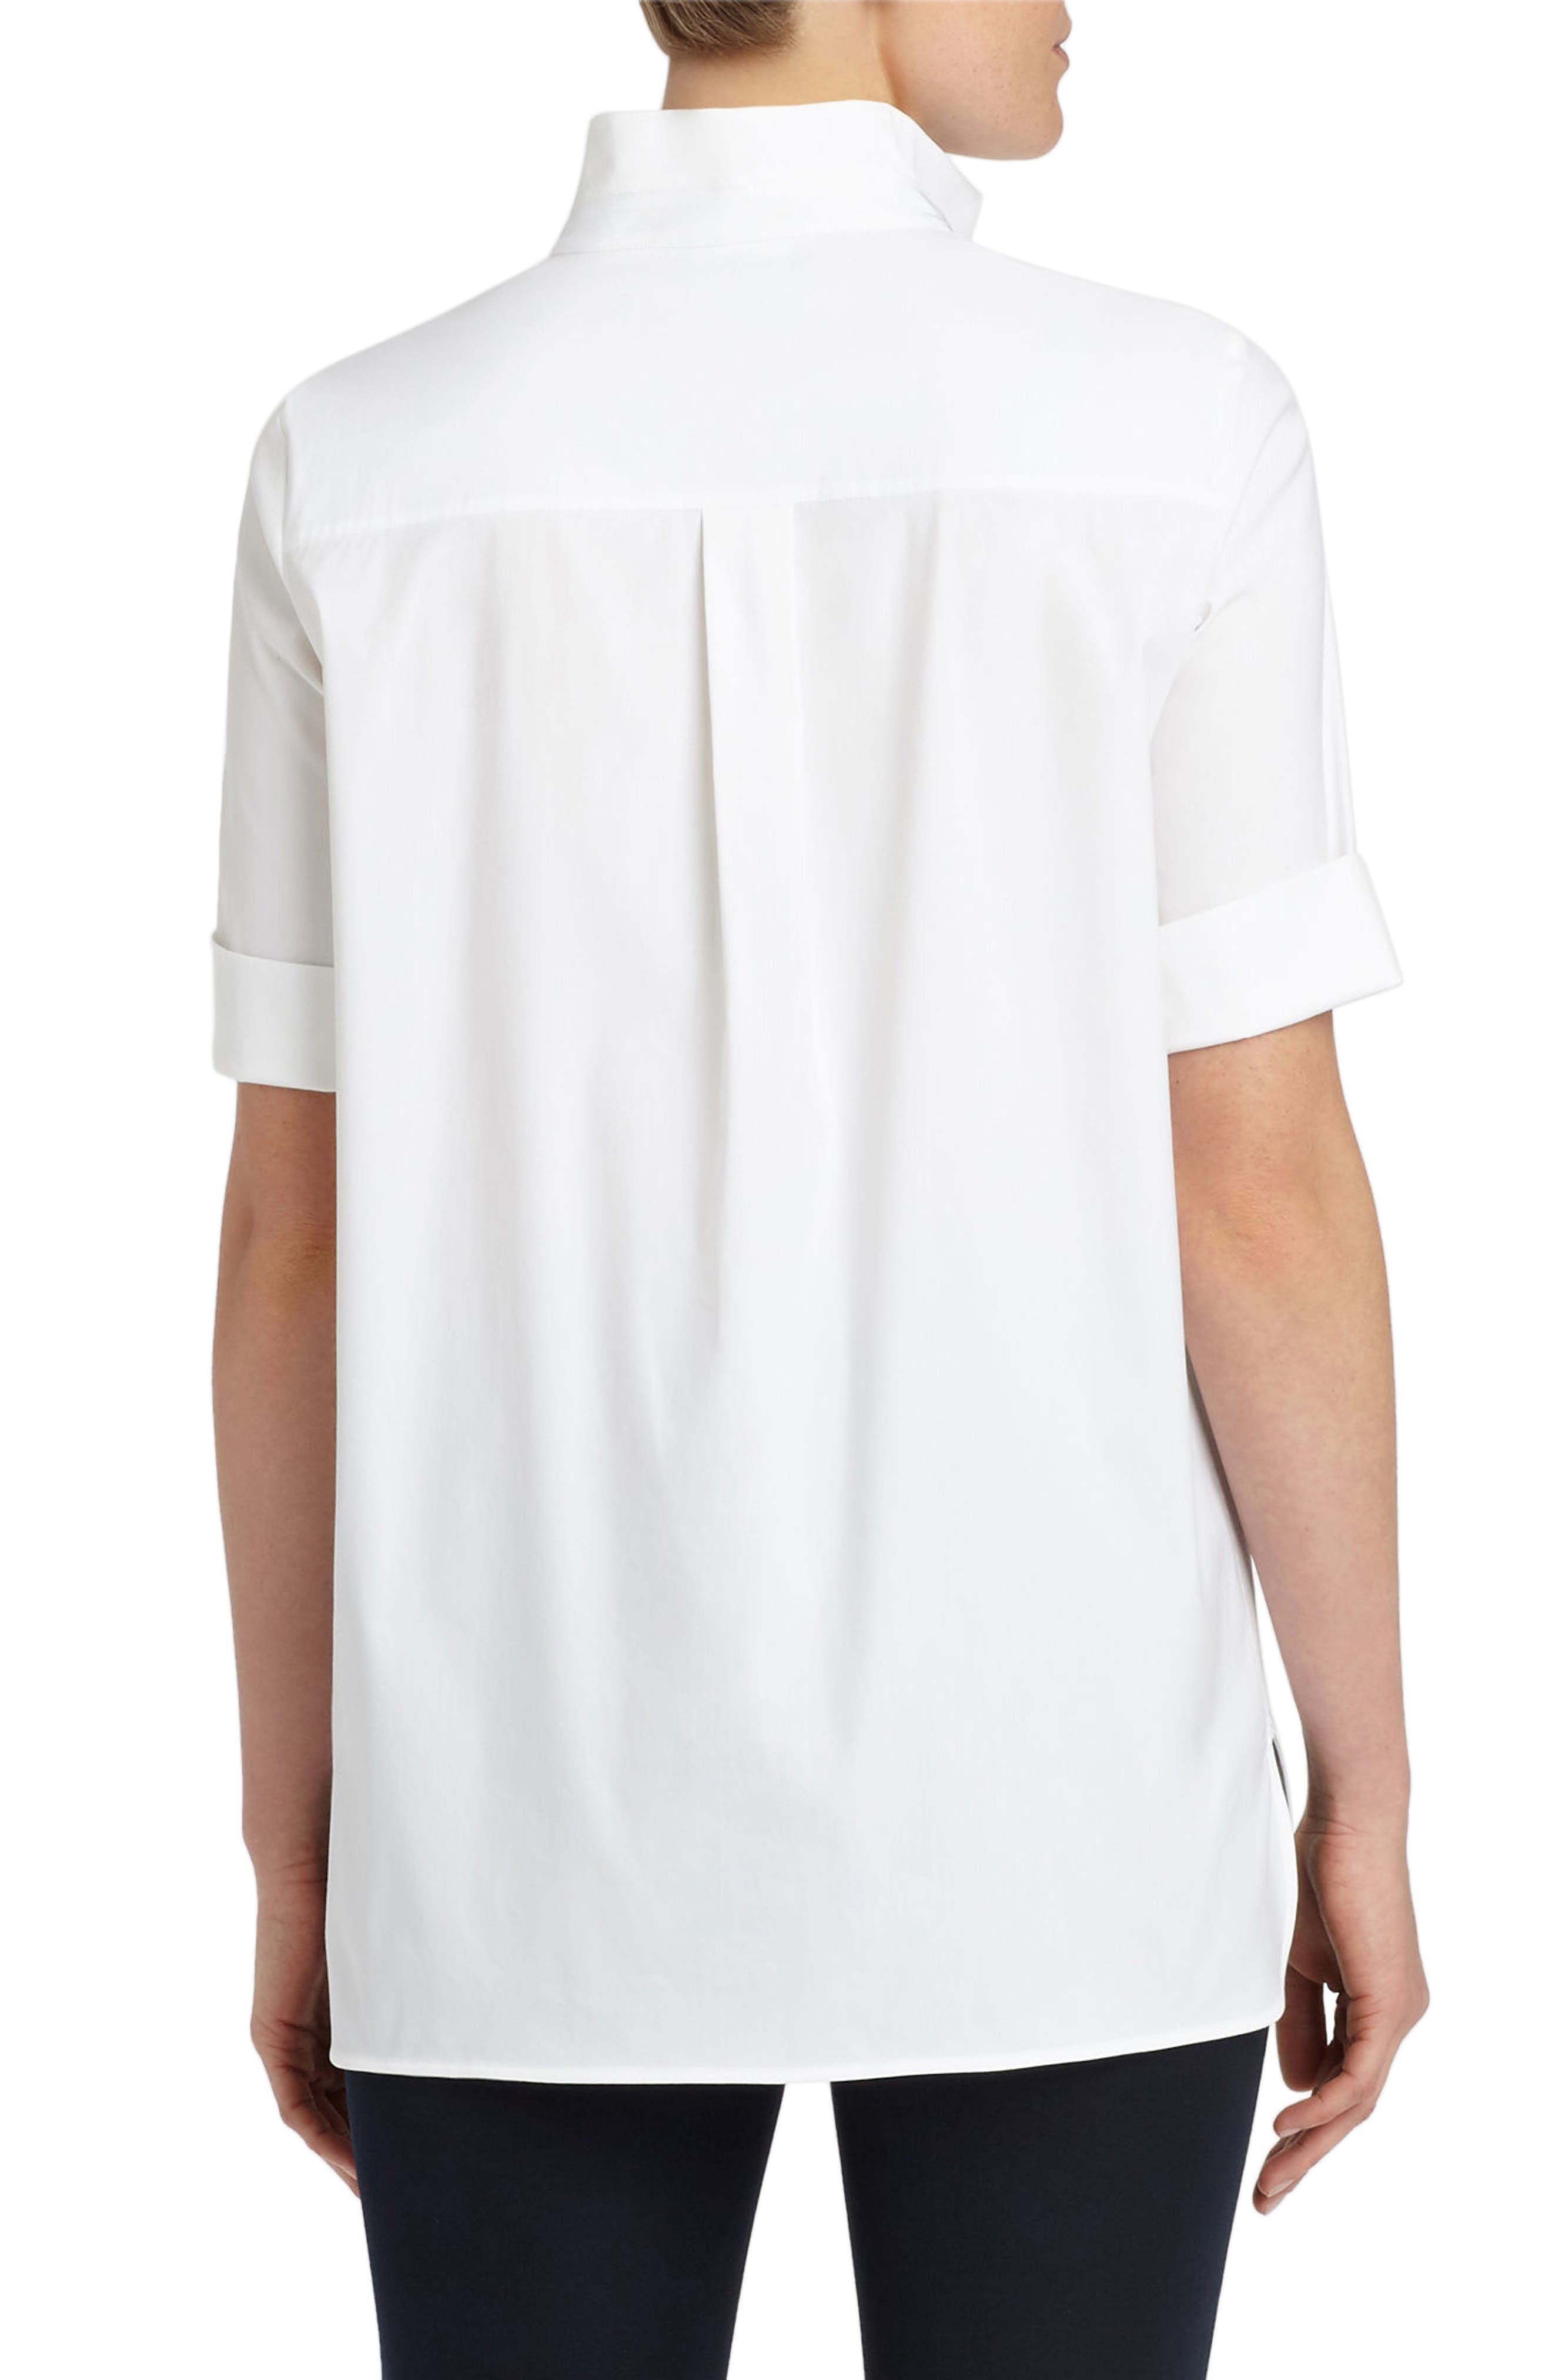 Daley High/Low Blouse,                             Alternate thumbnail 2, color,                             White